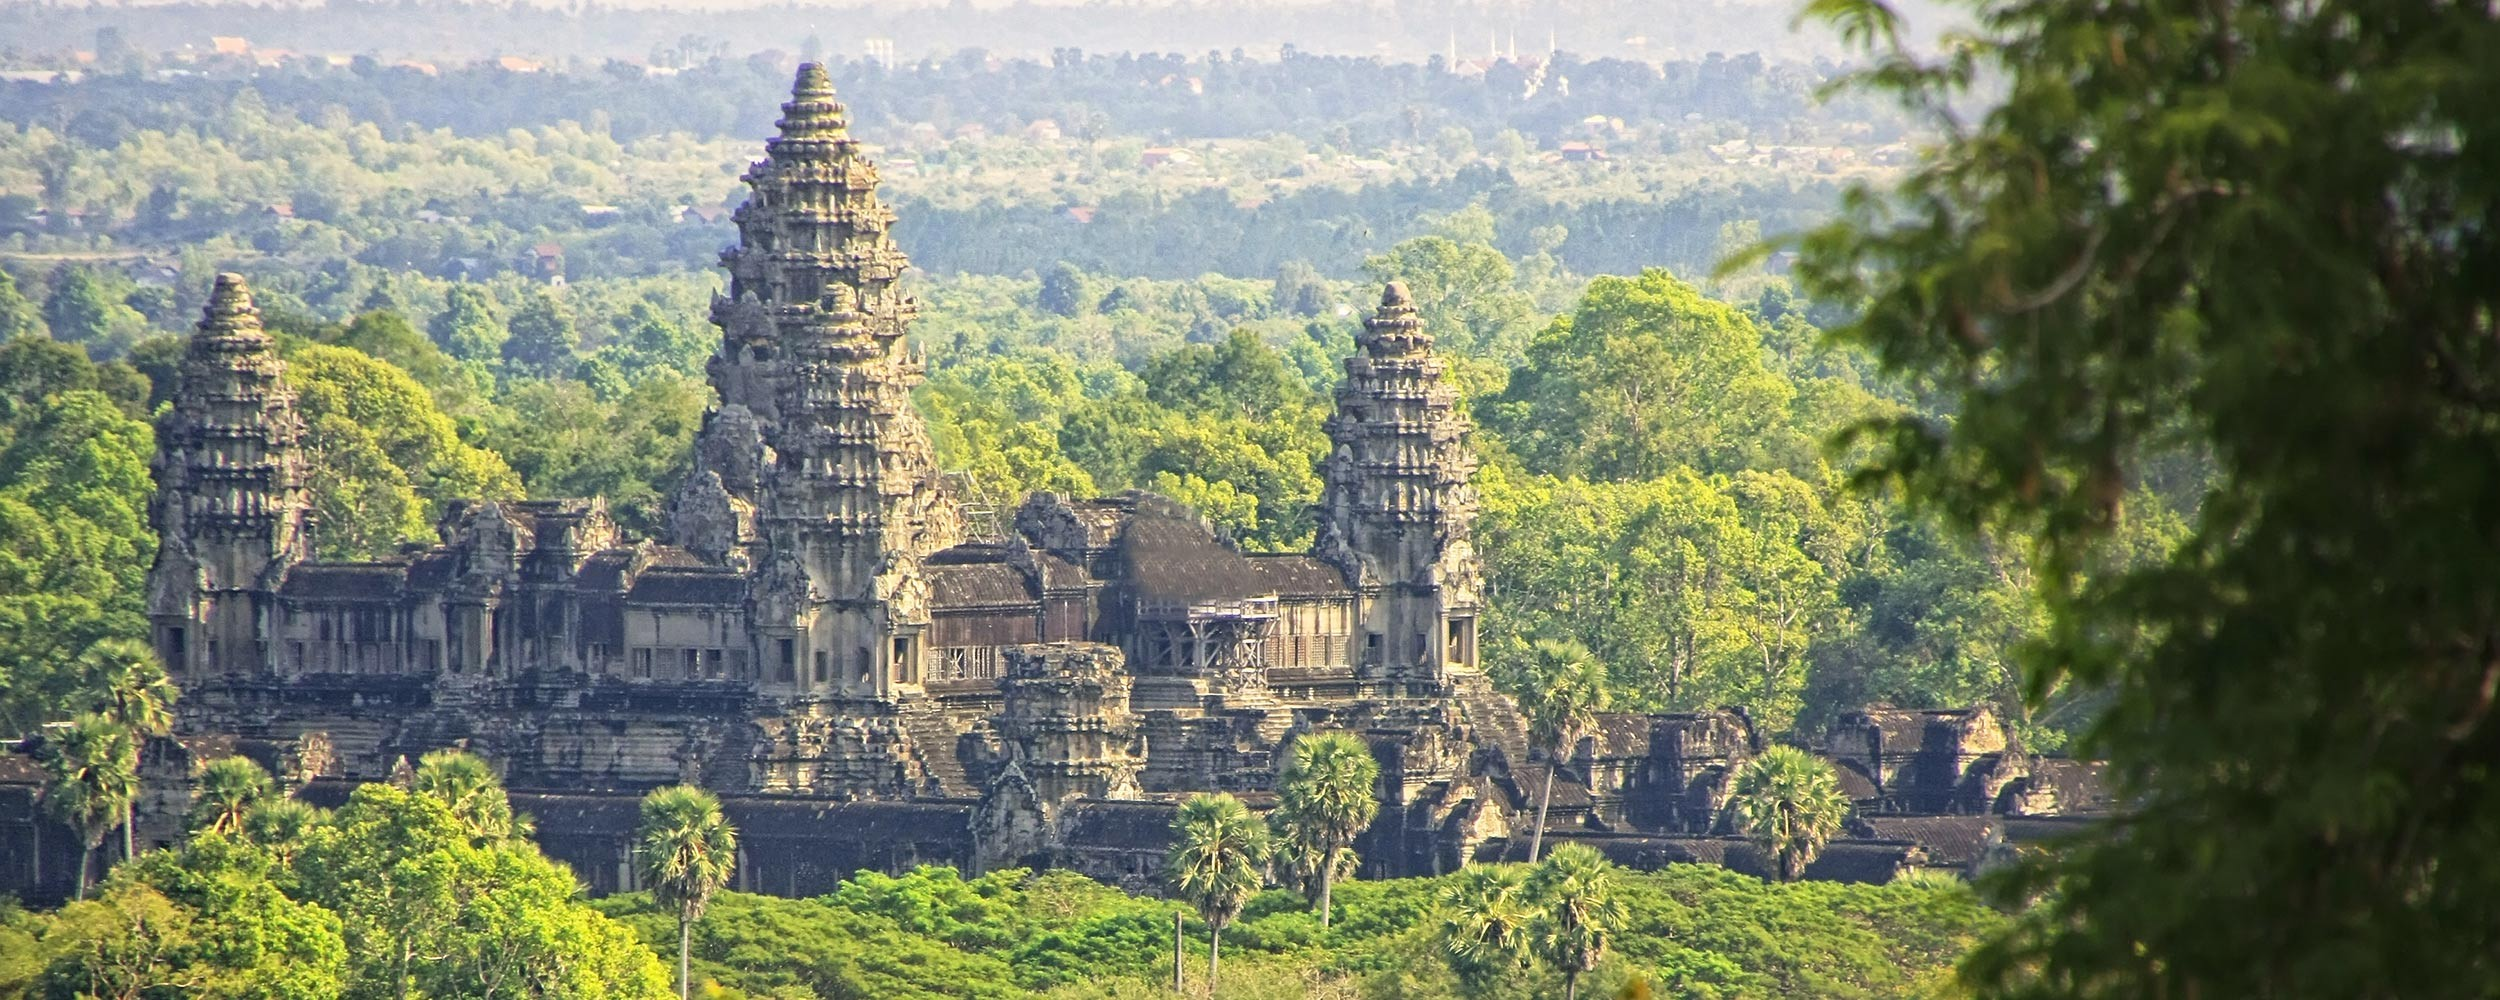 Cambodge temple Angkor Wat